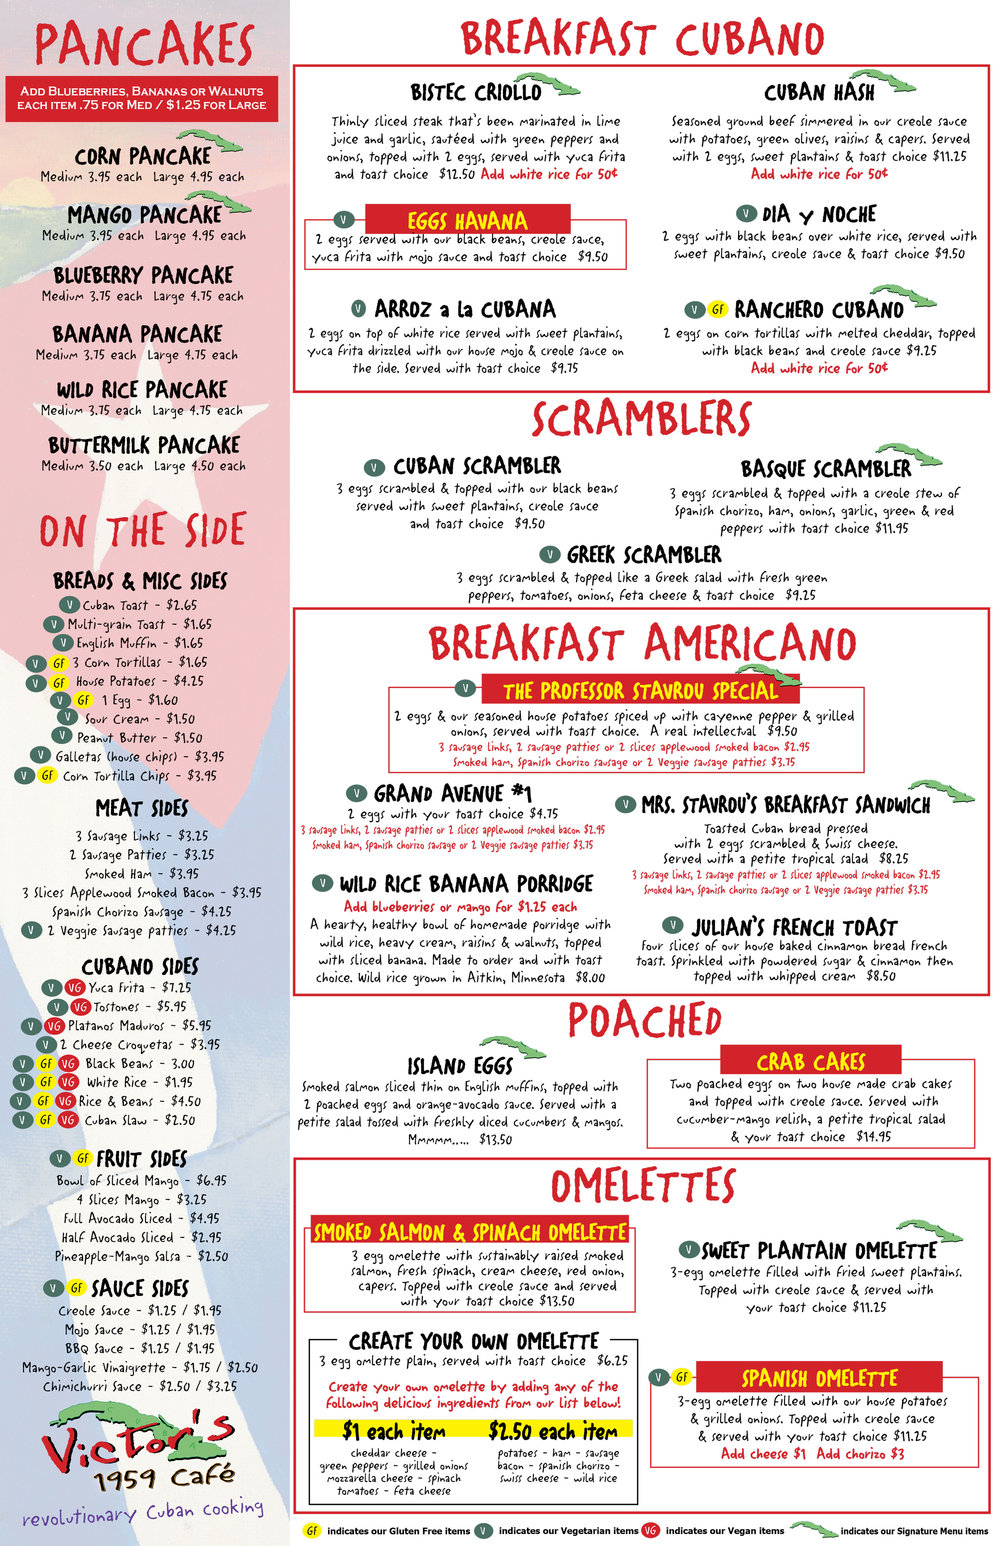 Victors-1959-Cafe-Breakfast_Lunch-Menu_page_2.jpg